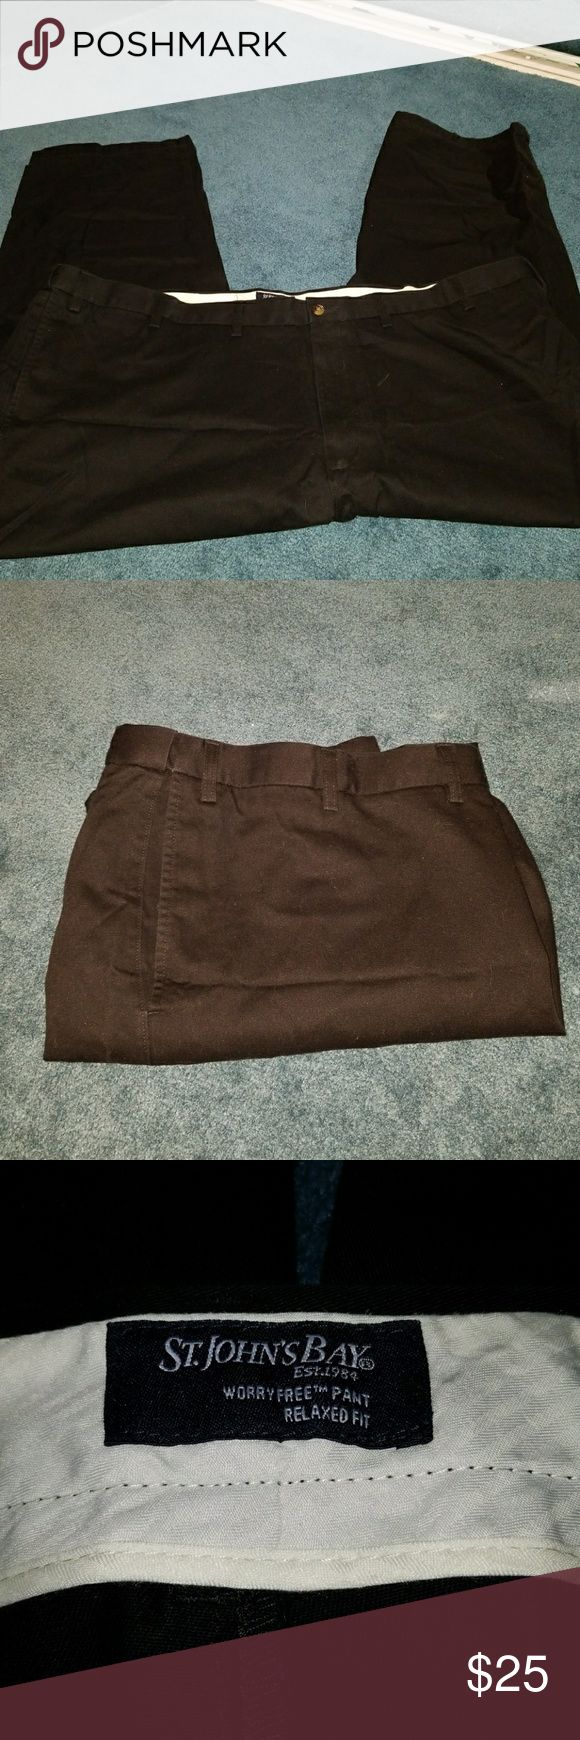 St. John's Bay pants (Big & Tall) St. John's Bay WorryFree Relaxed Fit pants add extra inches to your waist to provide supreme comfort. St. John's Bay Pants